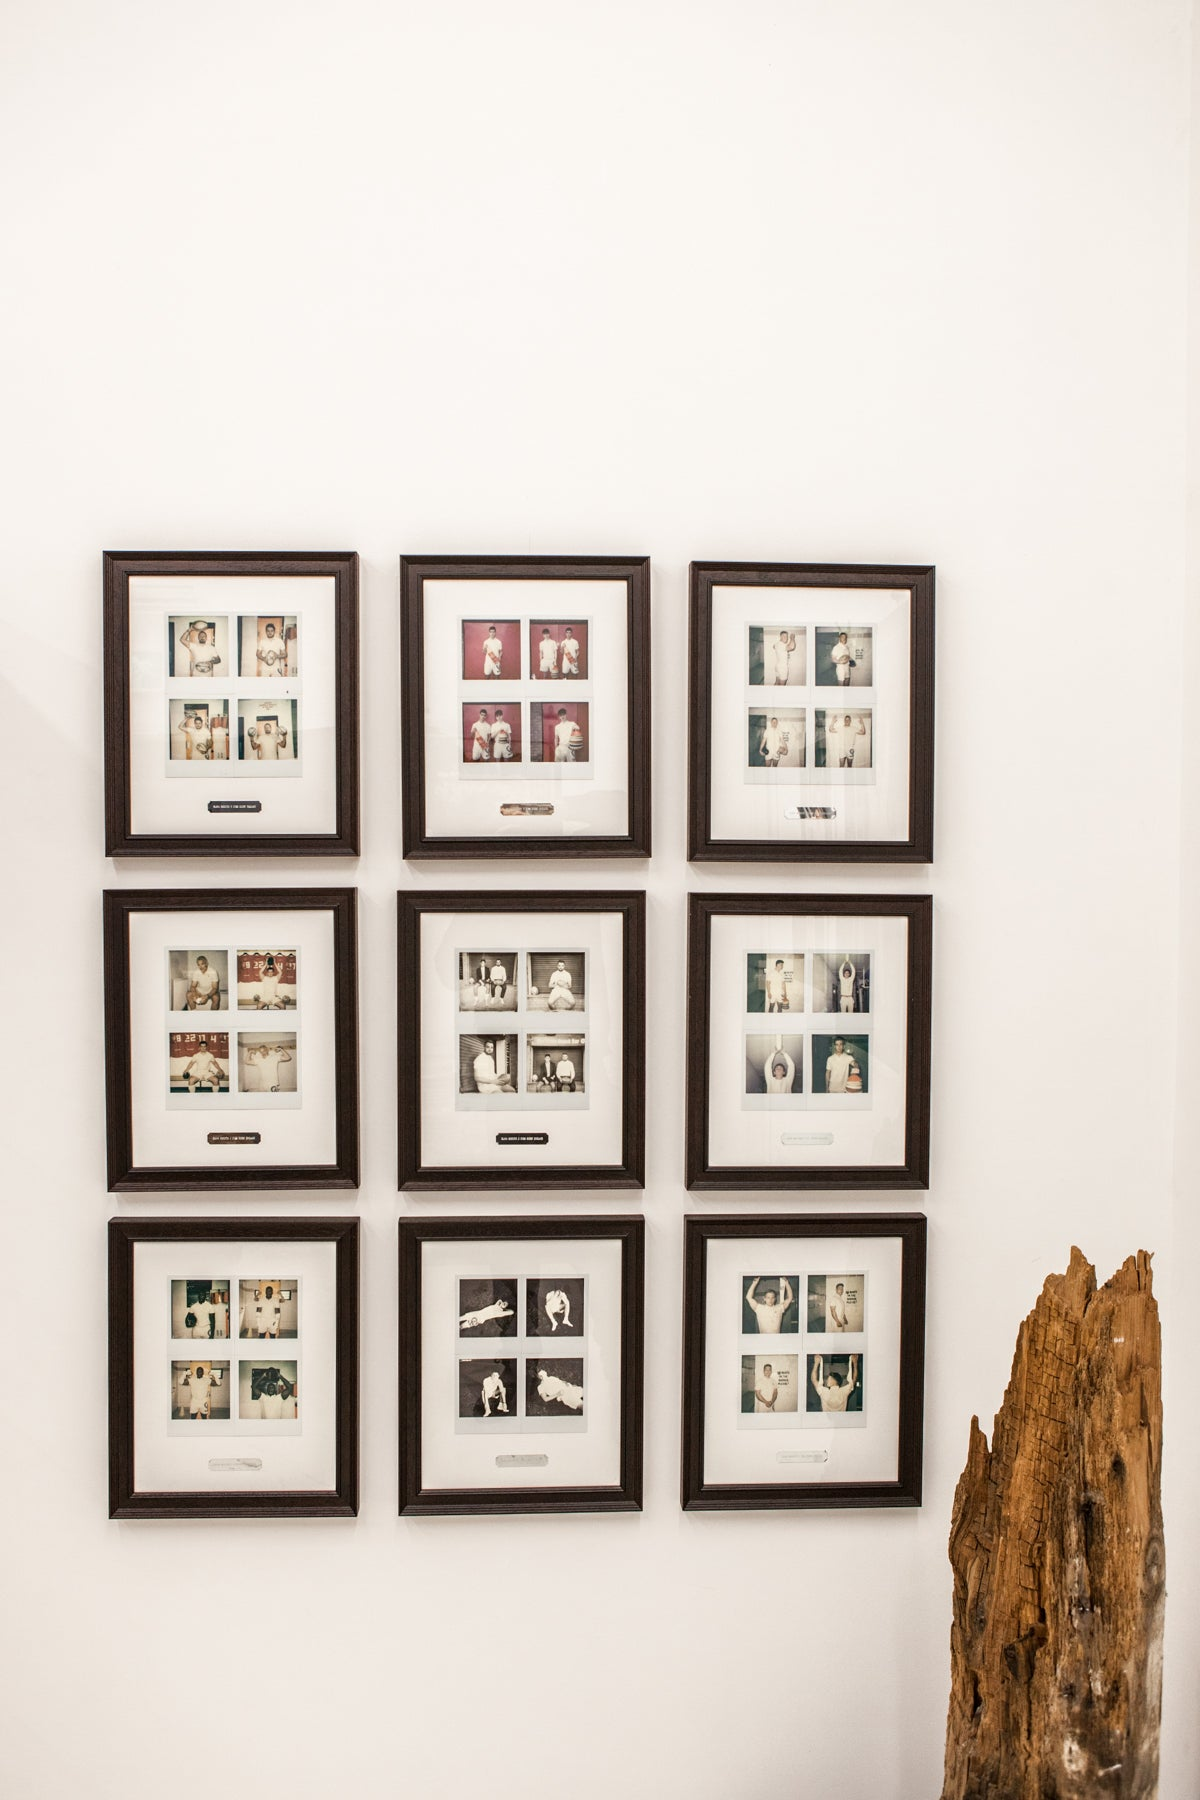 BEN - 320mm × 400mm - Framed 4 x Original Polaroids